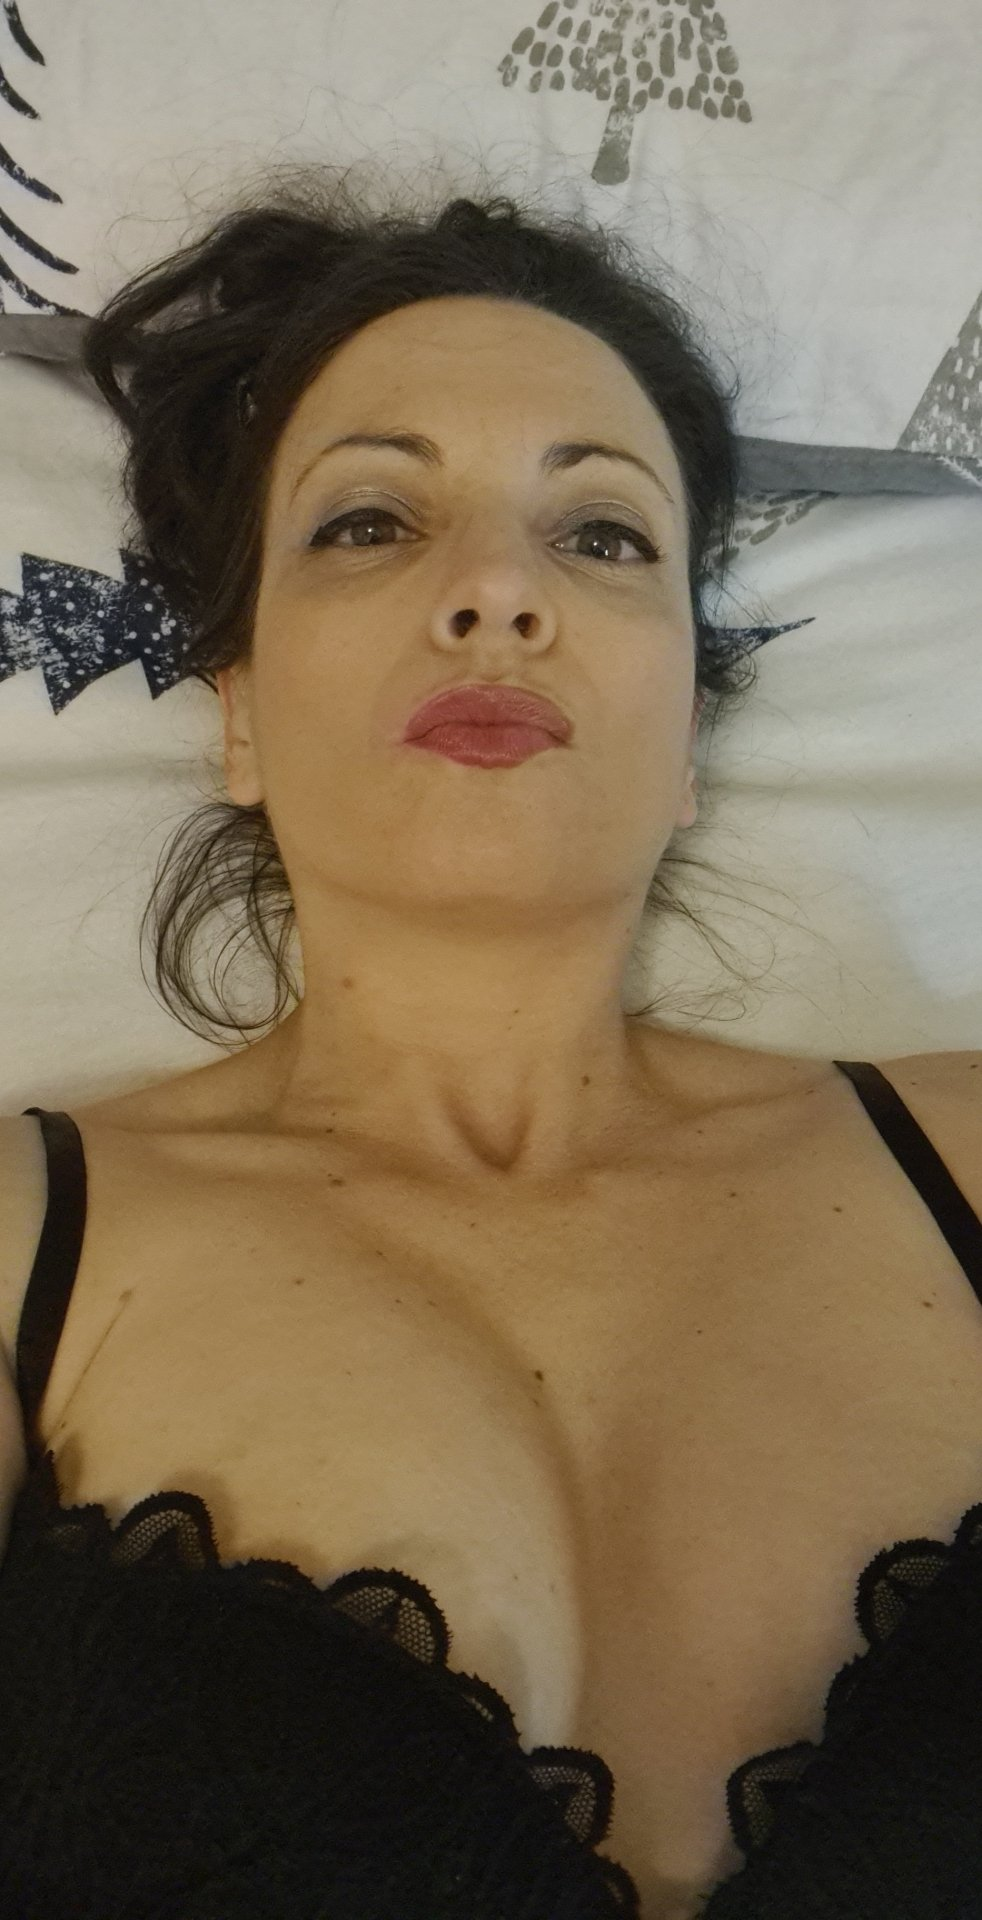 r0leplayingQueen from North Lanarkshire,United Kingdom